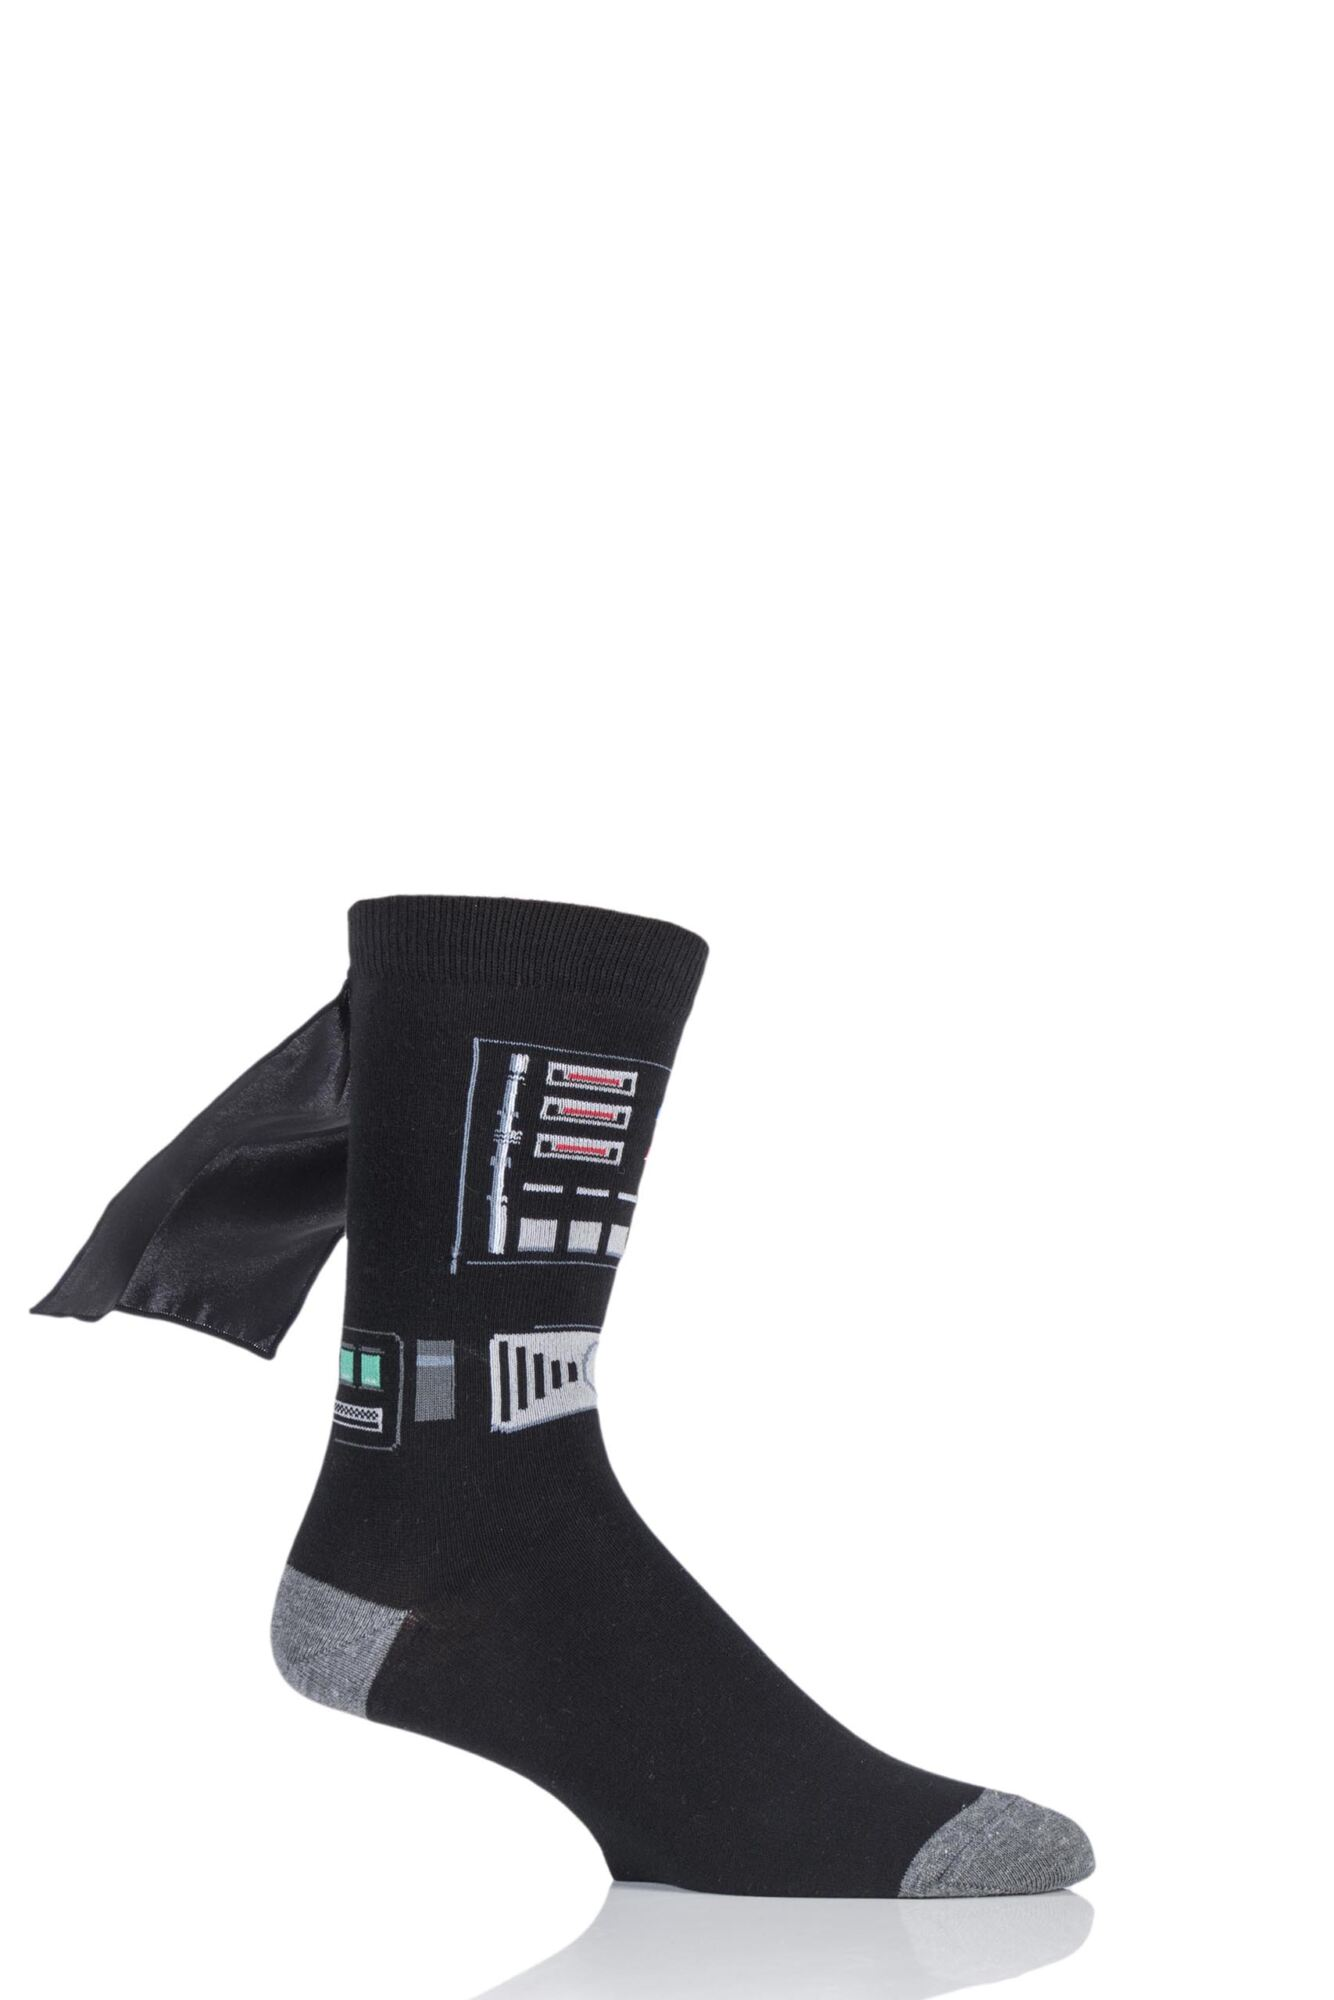 1 Pair Disney Star Wars Darth Vader Cape Socks Men's - Film & TV Characters